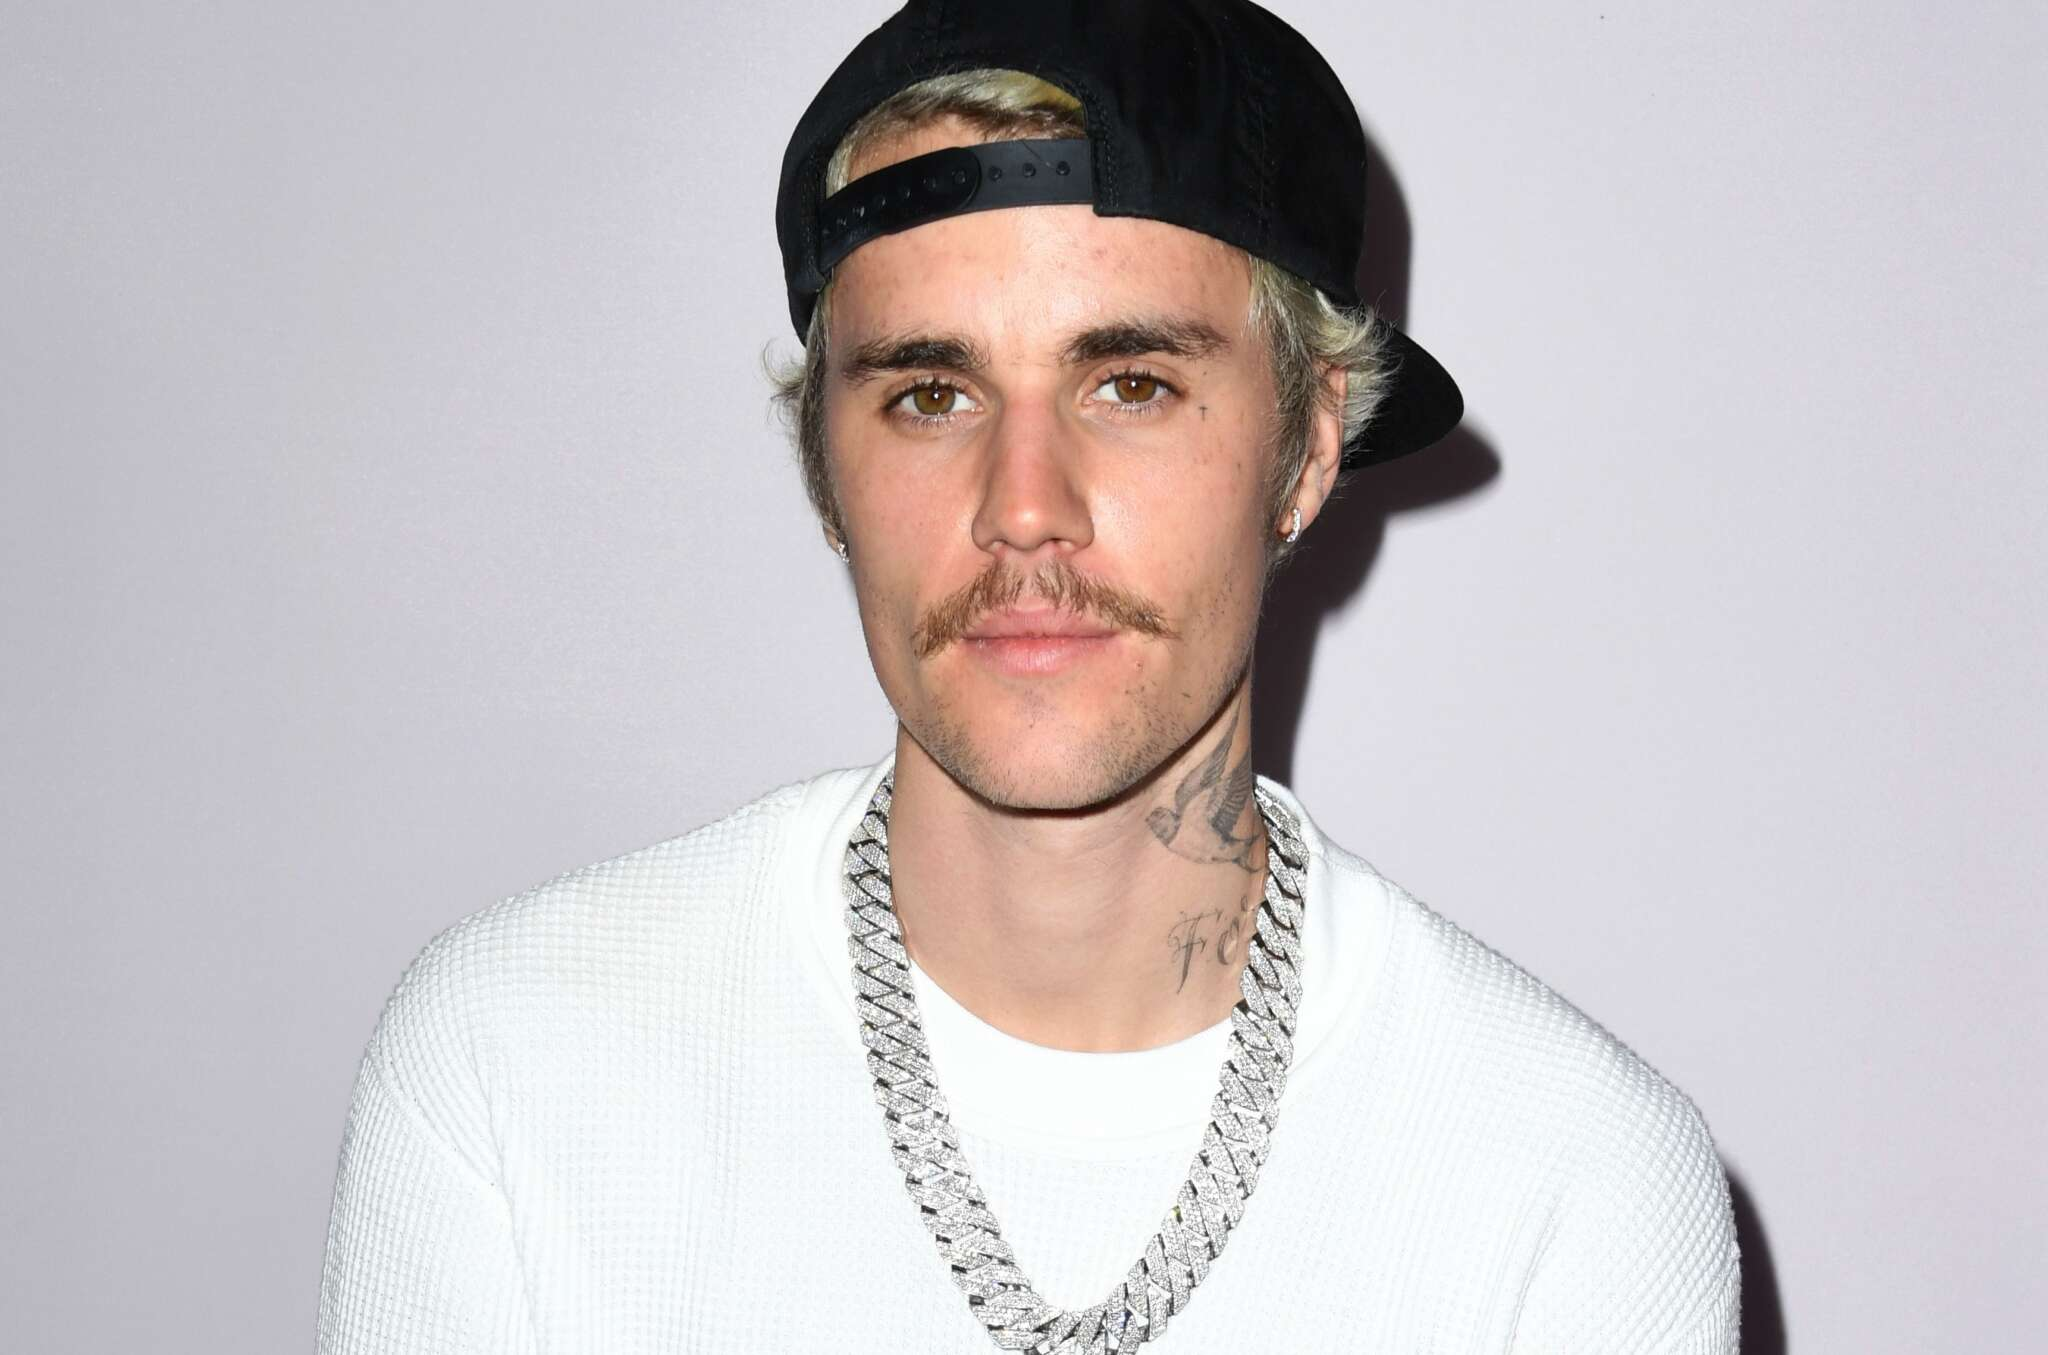 Justin Bieber Opens Up About Being Arrested In 2014 And How He Turned His Life Around